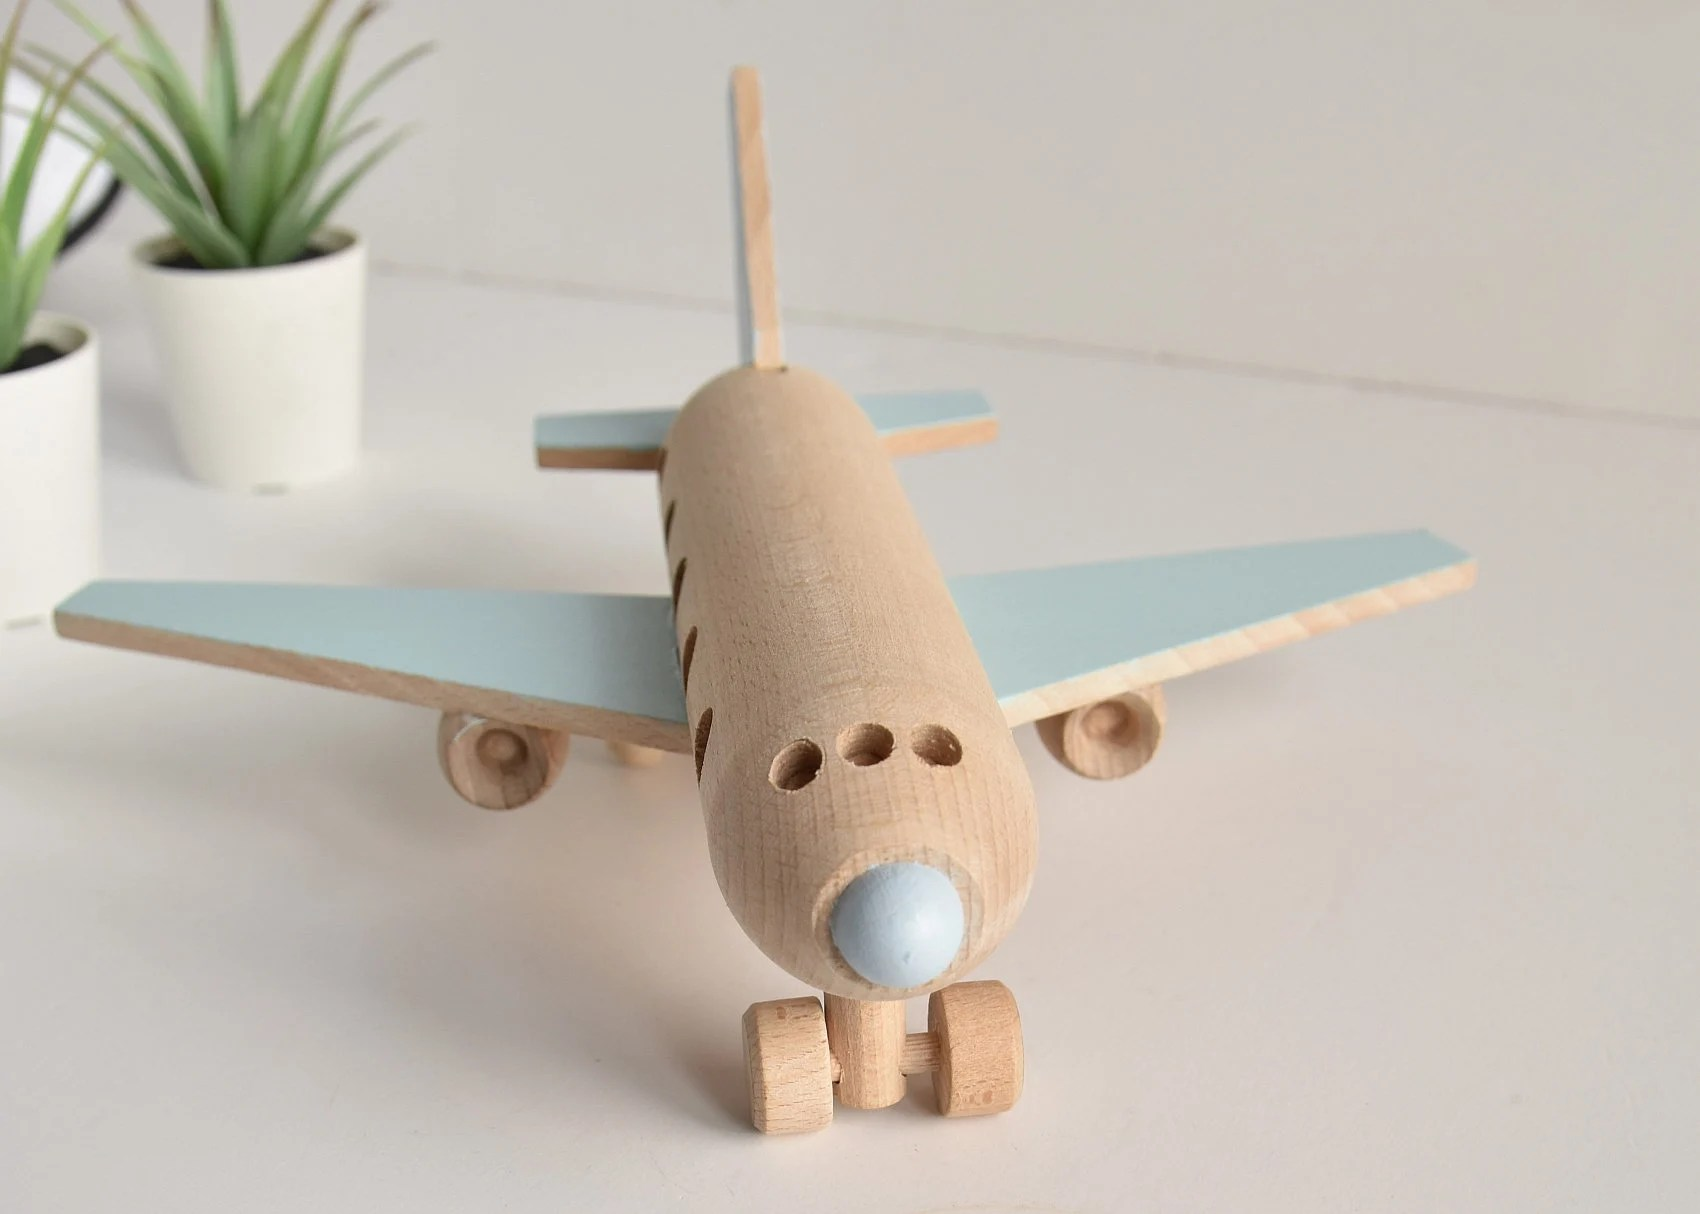 Wooden airplane  Wooden toys  Eco toy  Airplane decor  image 1